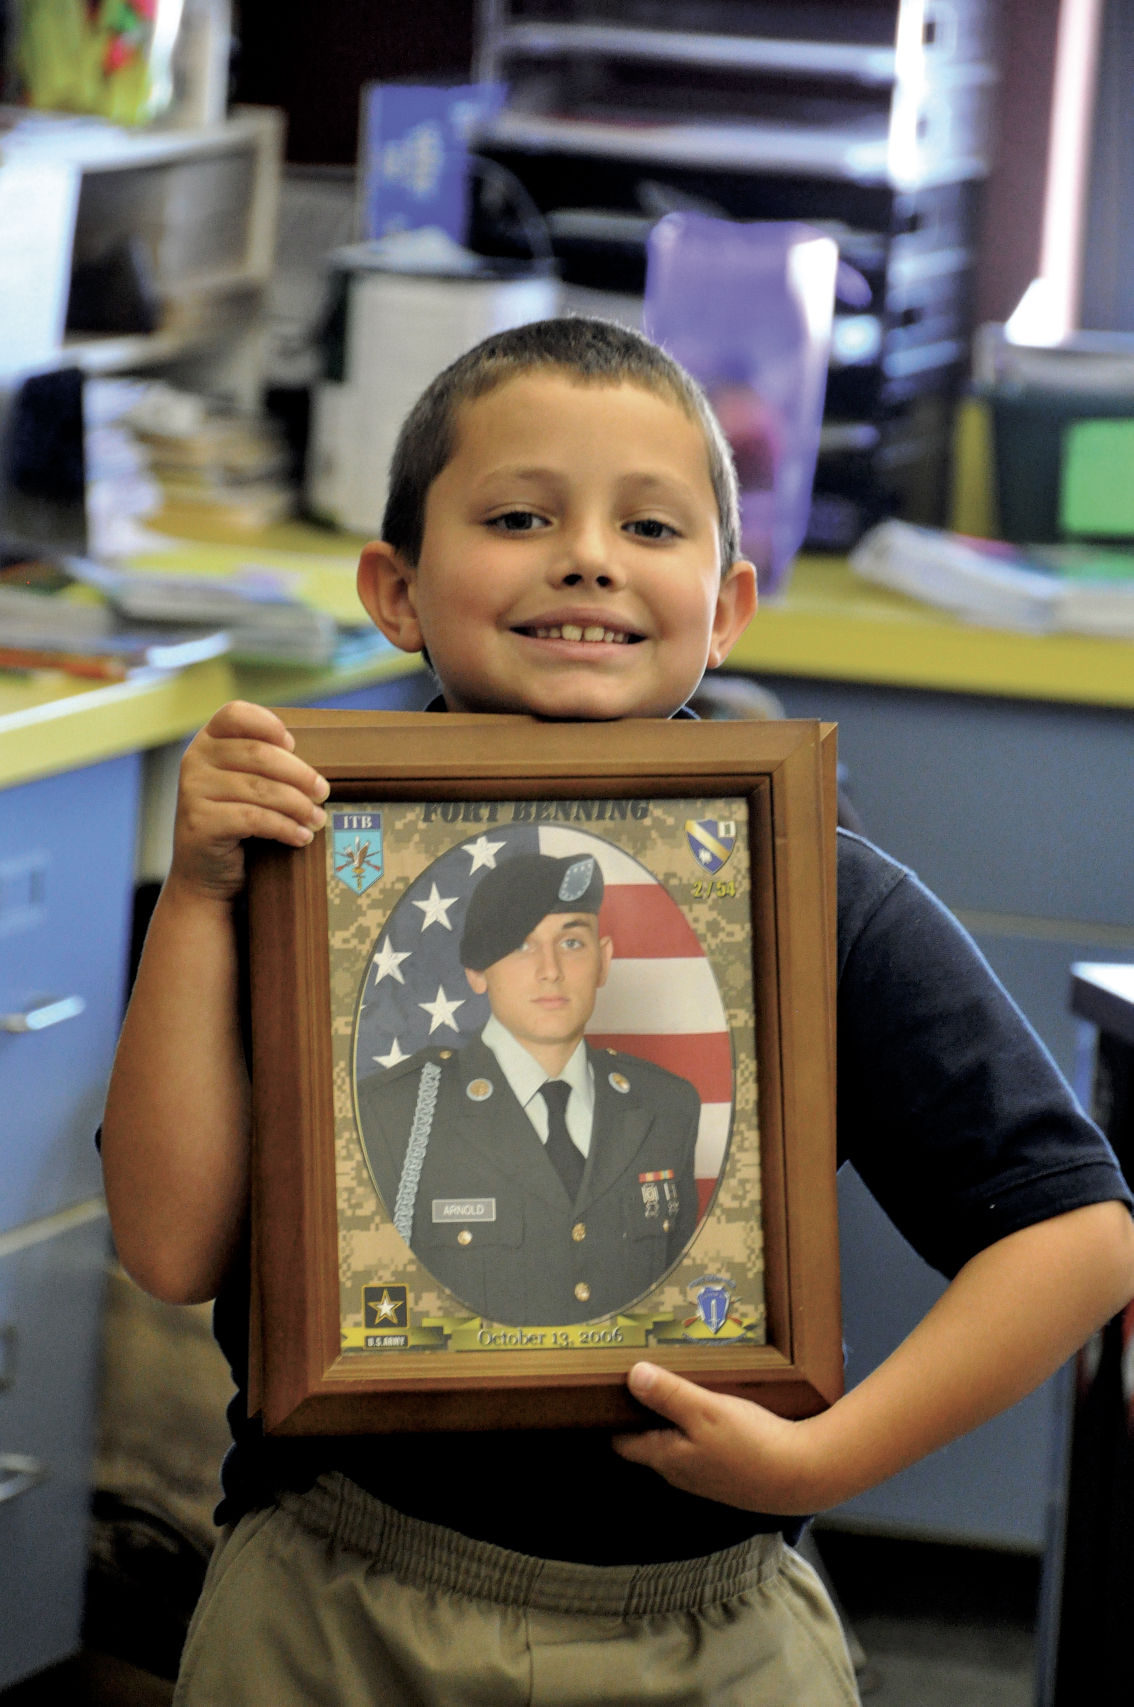 Soldier-brother receives 21 thank-you letters | Life & Times ...